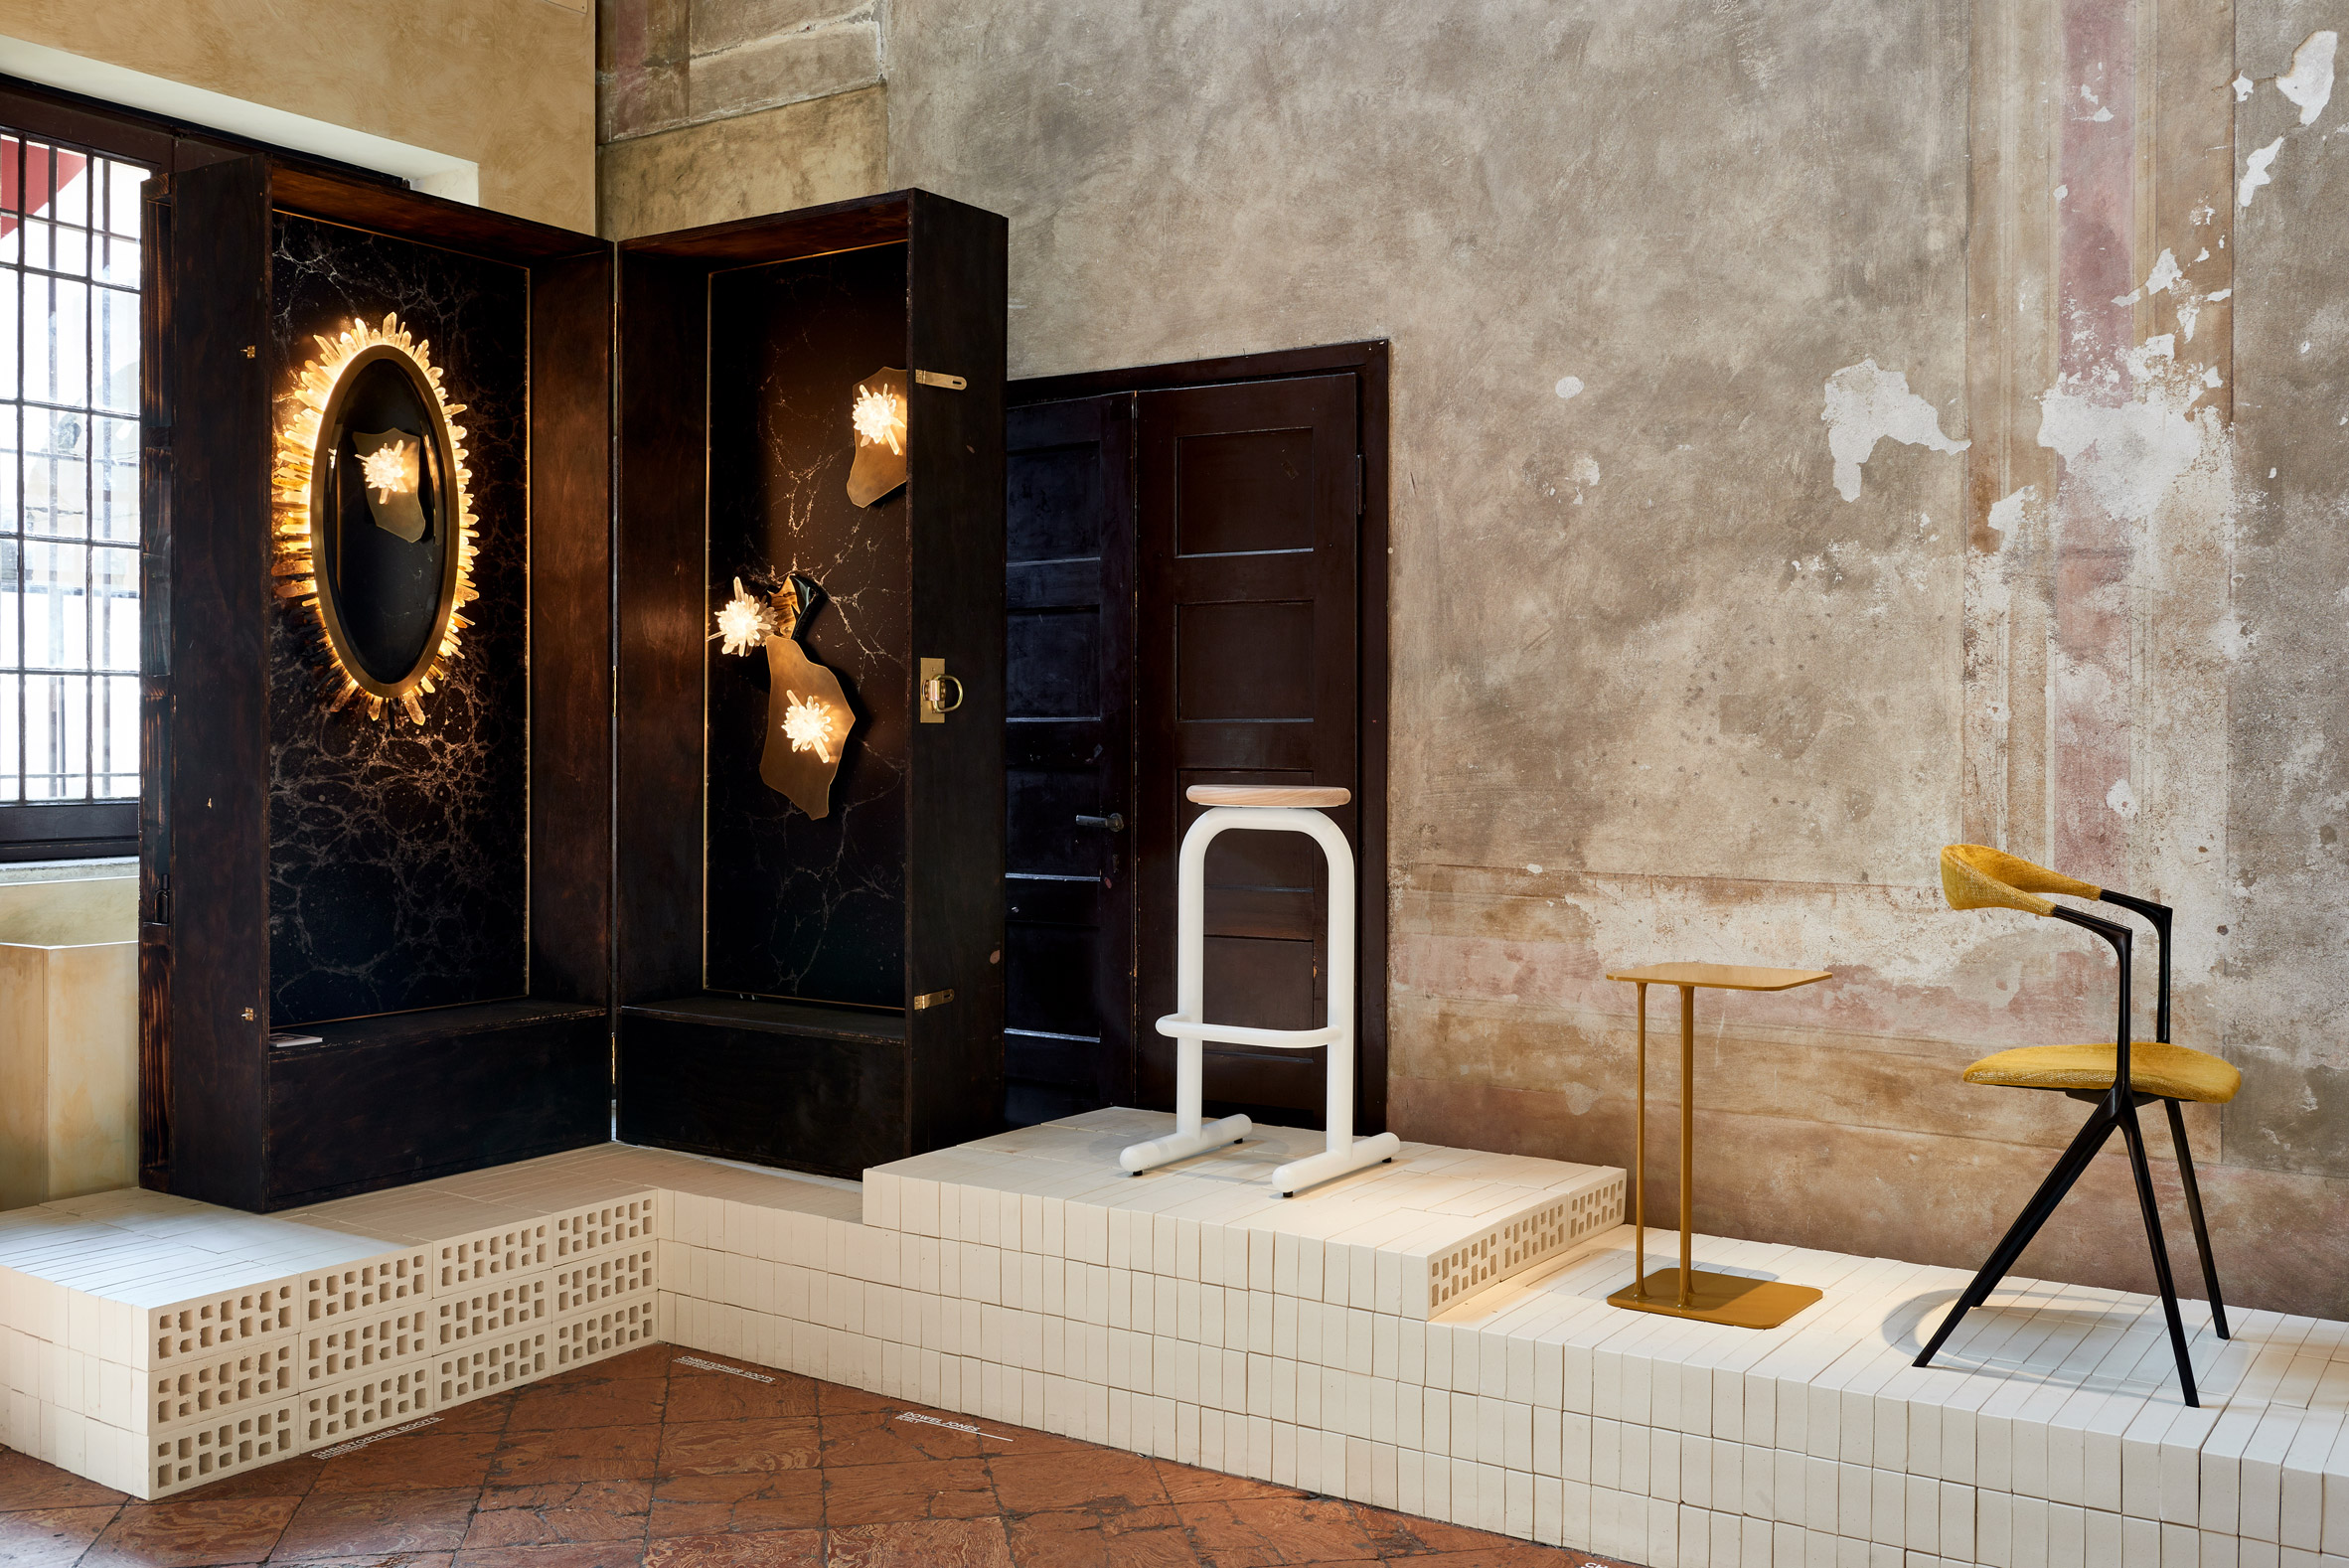 Australian designers take over the oratory in one of Milan's oldest churches